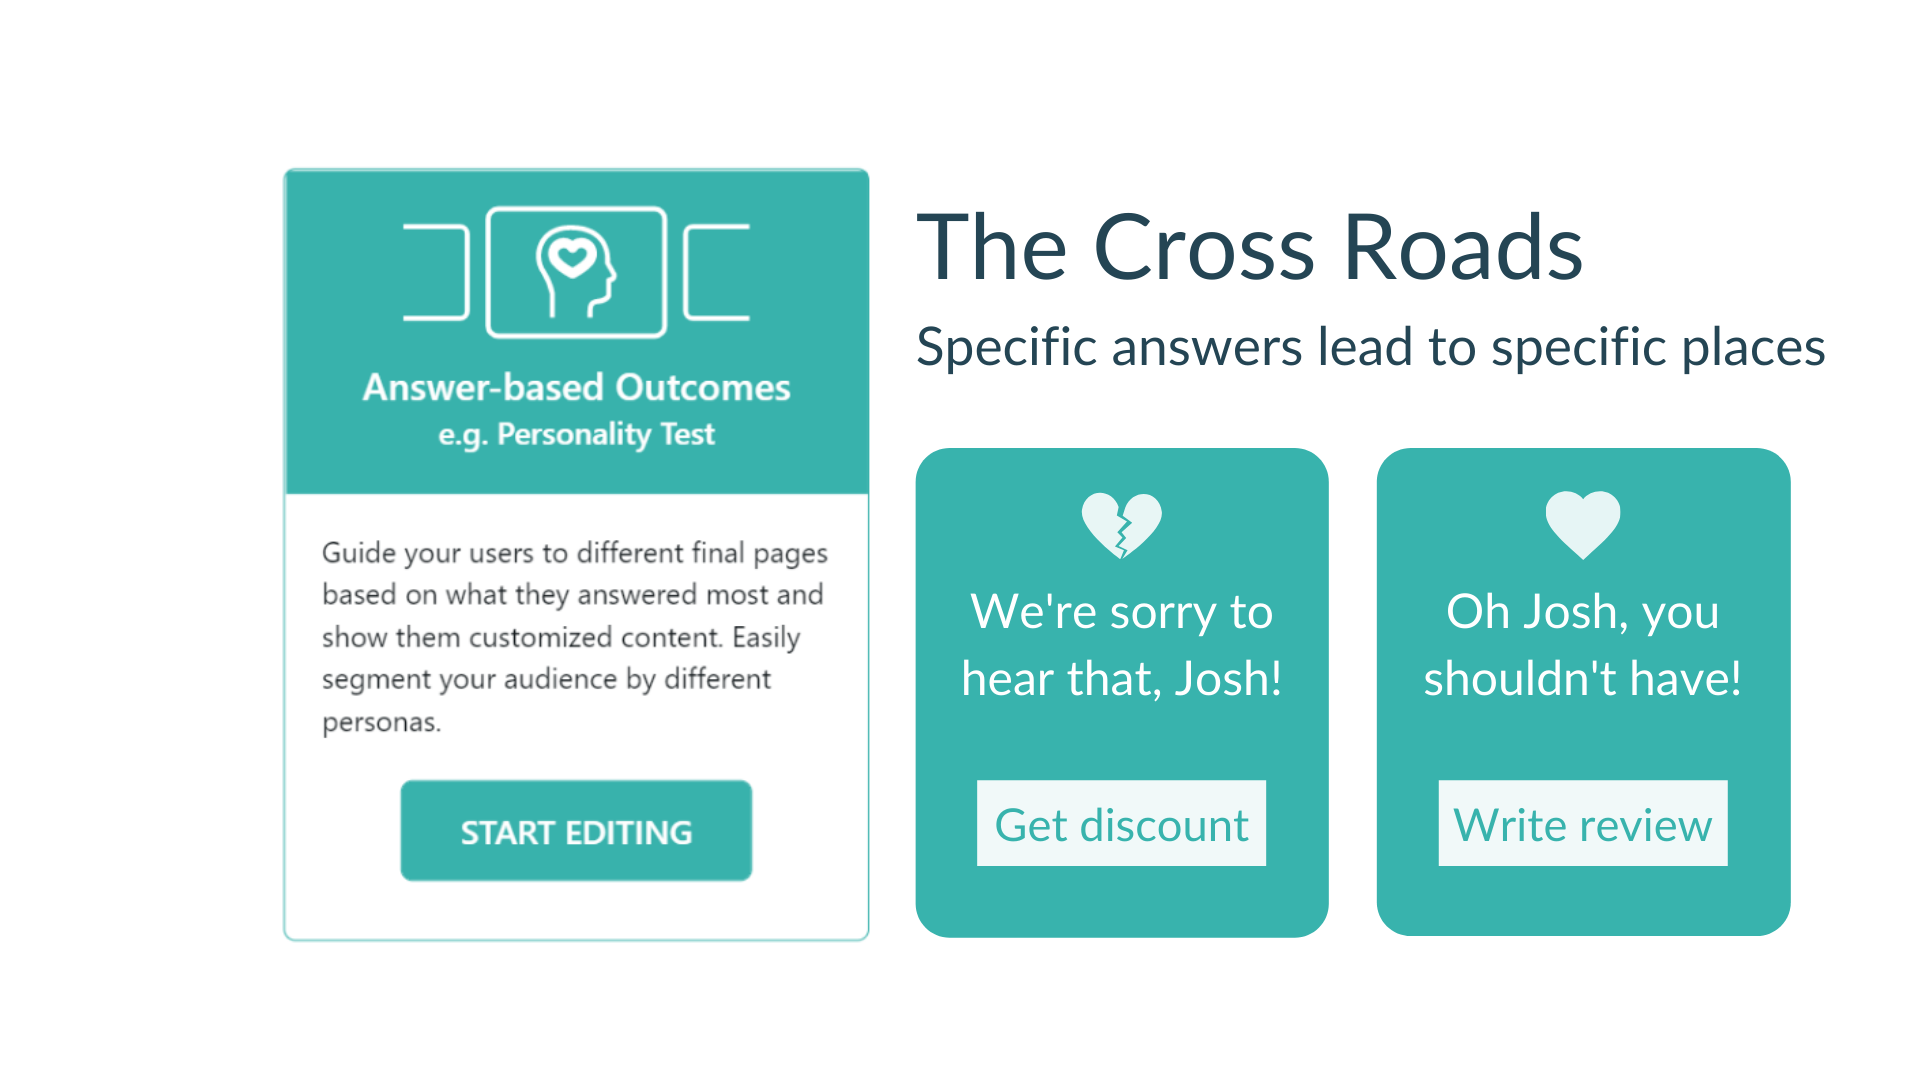 New Feature: Score-Based Outcomes